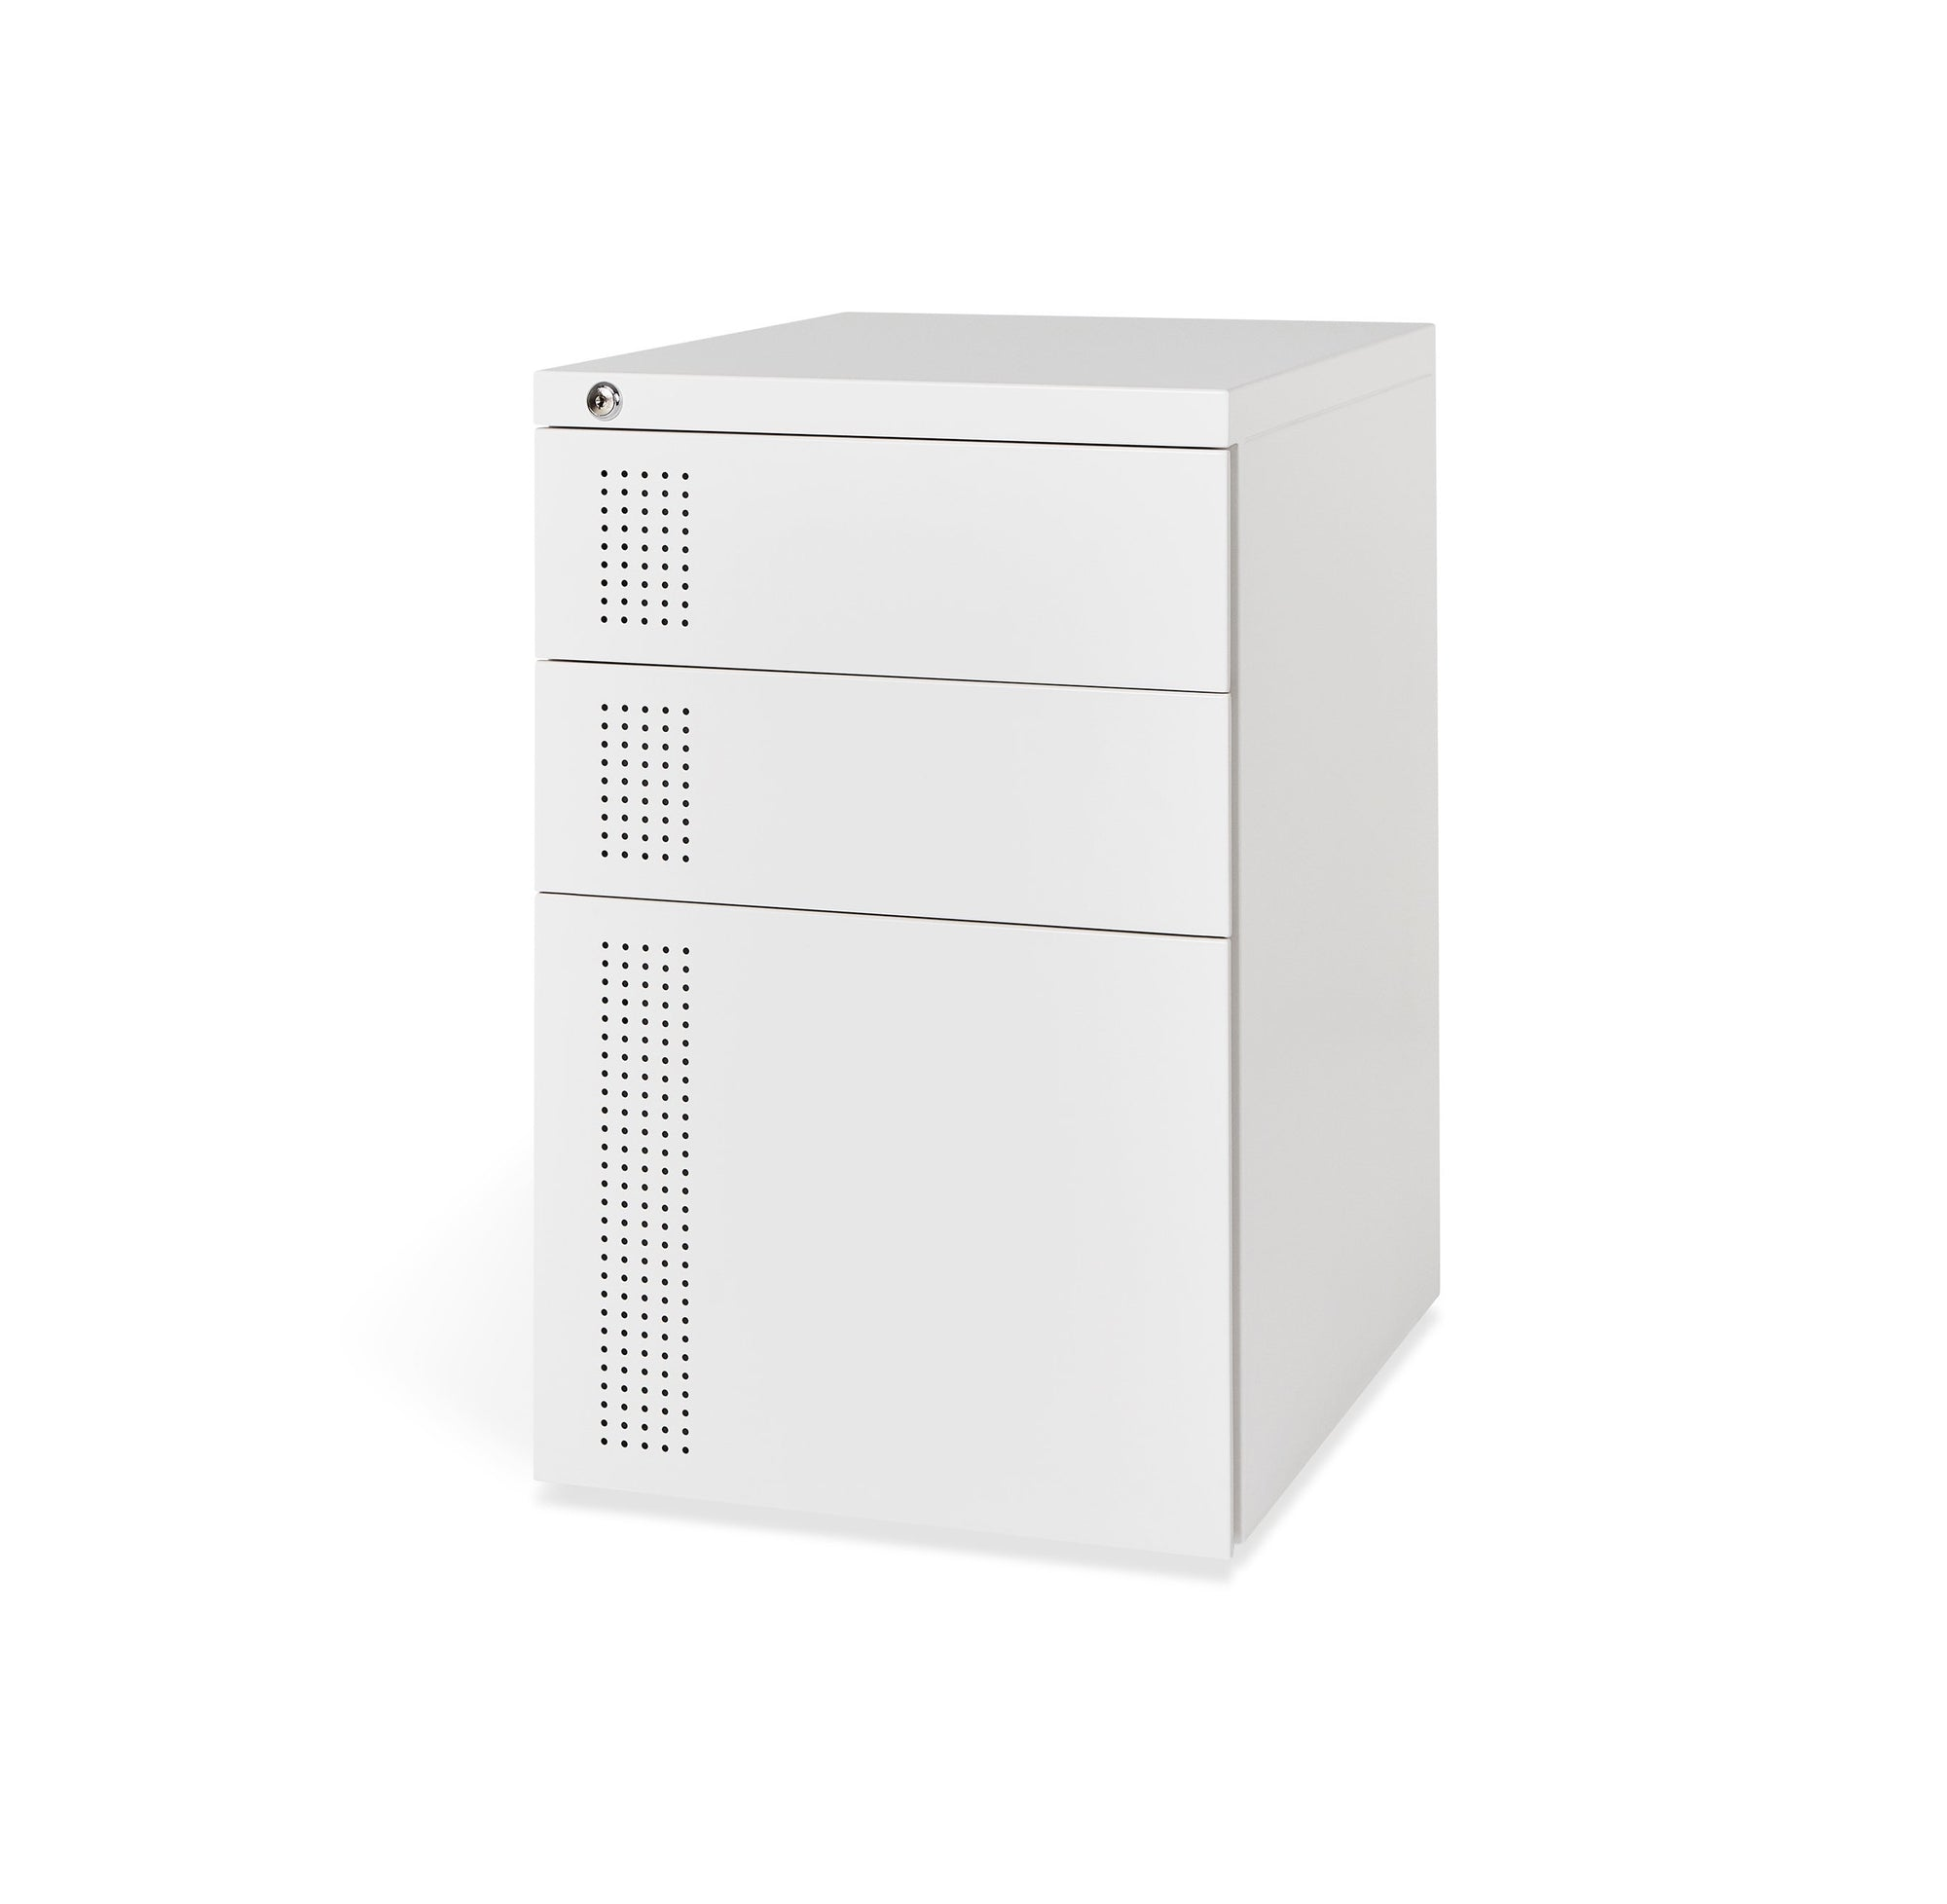 Perf File Cabinet - Rug & Weave